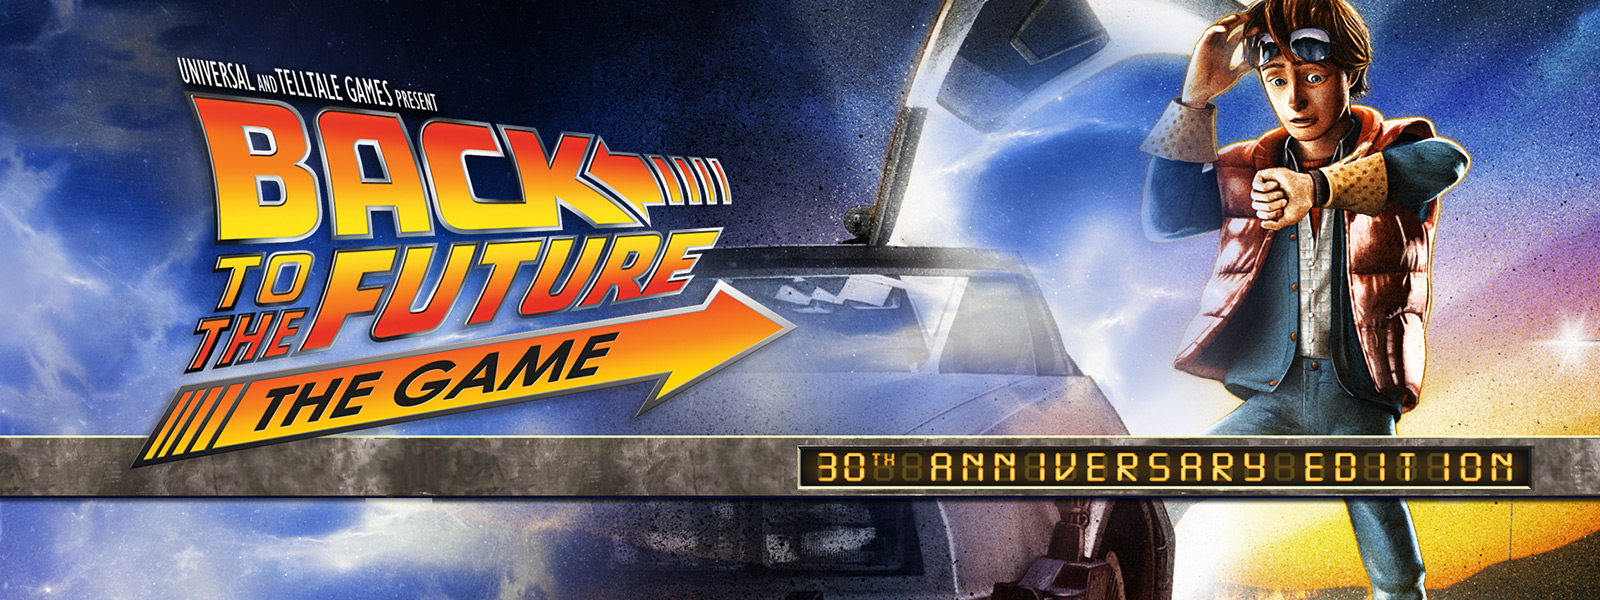 Marty McFly ja DeLorean Back to the Future -pelistä